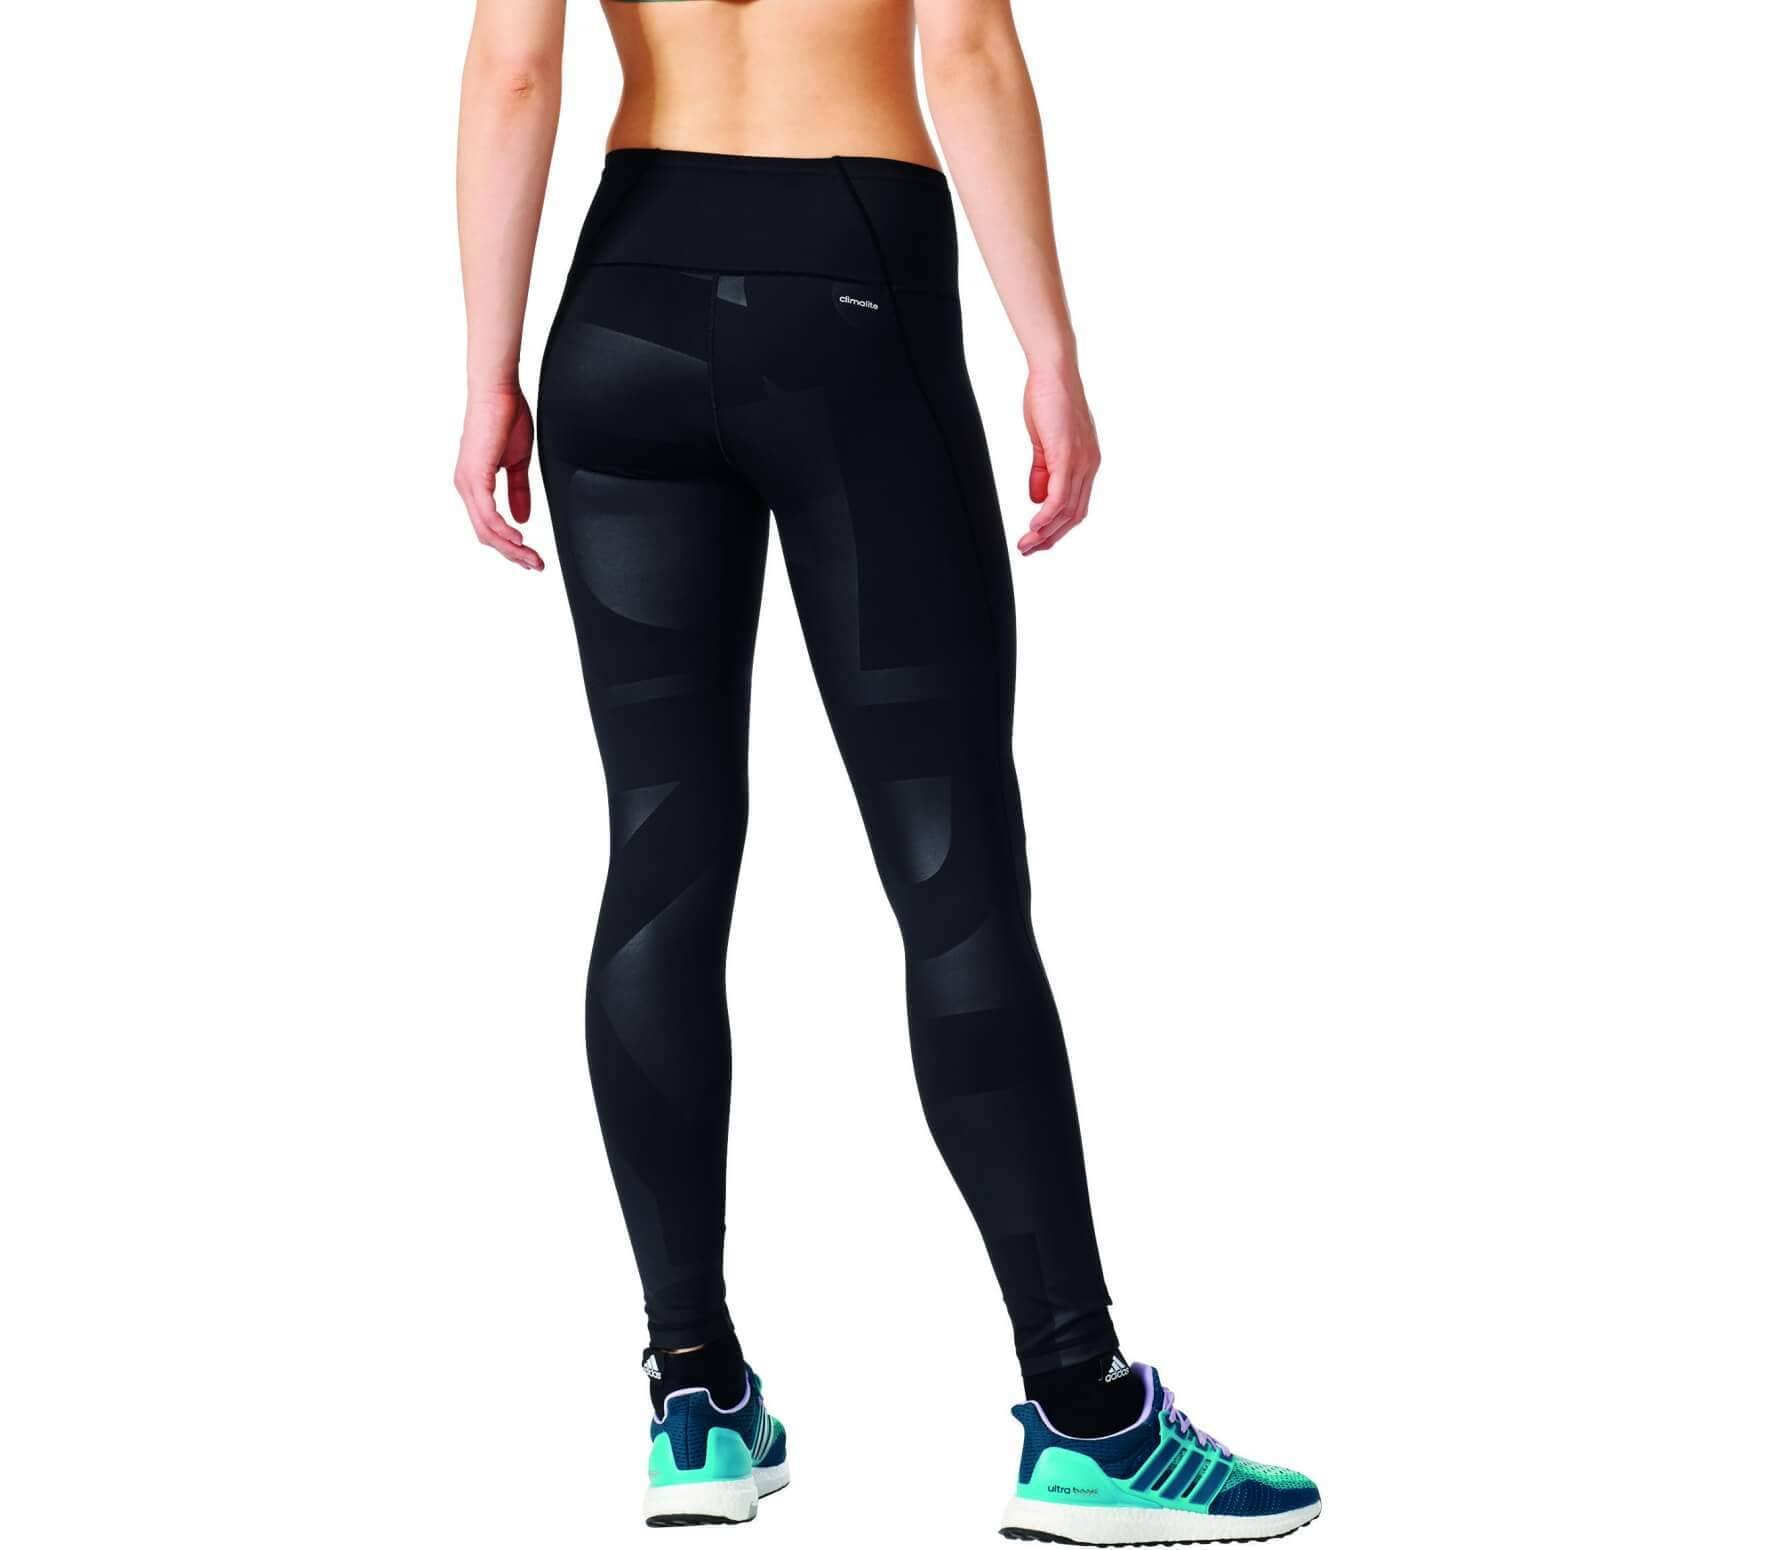 f4cbea30ed33 Adidas - Workout High Rise Long Tight women s training pants (black ...